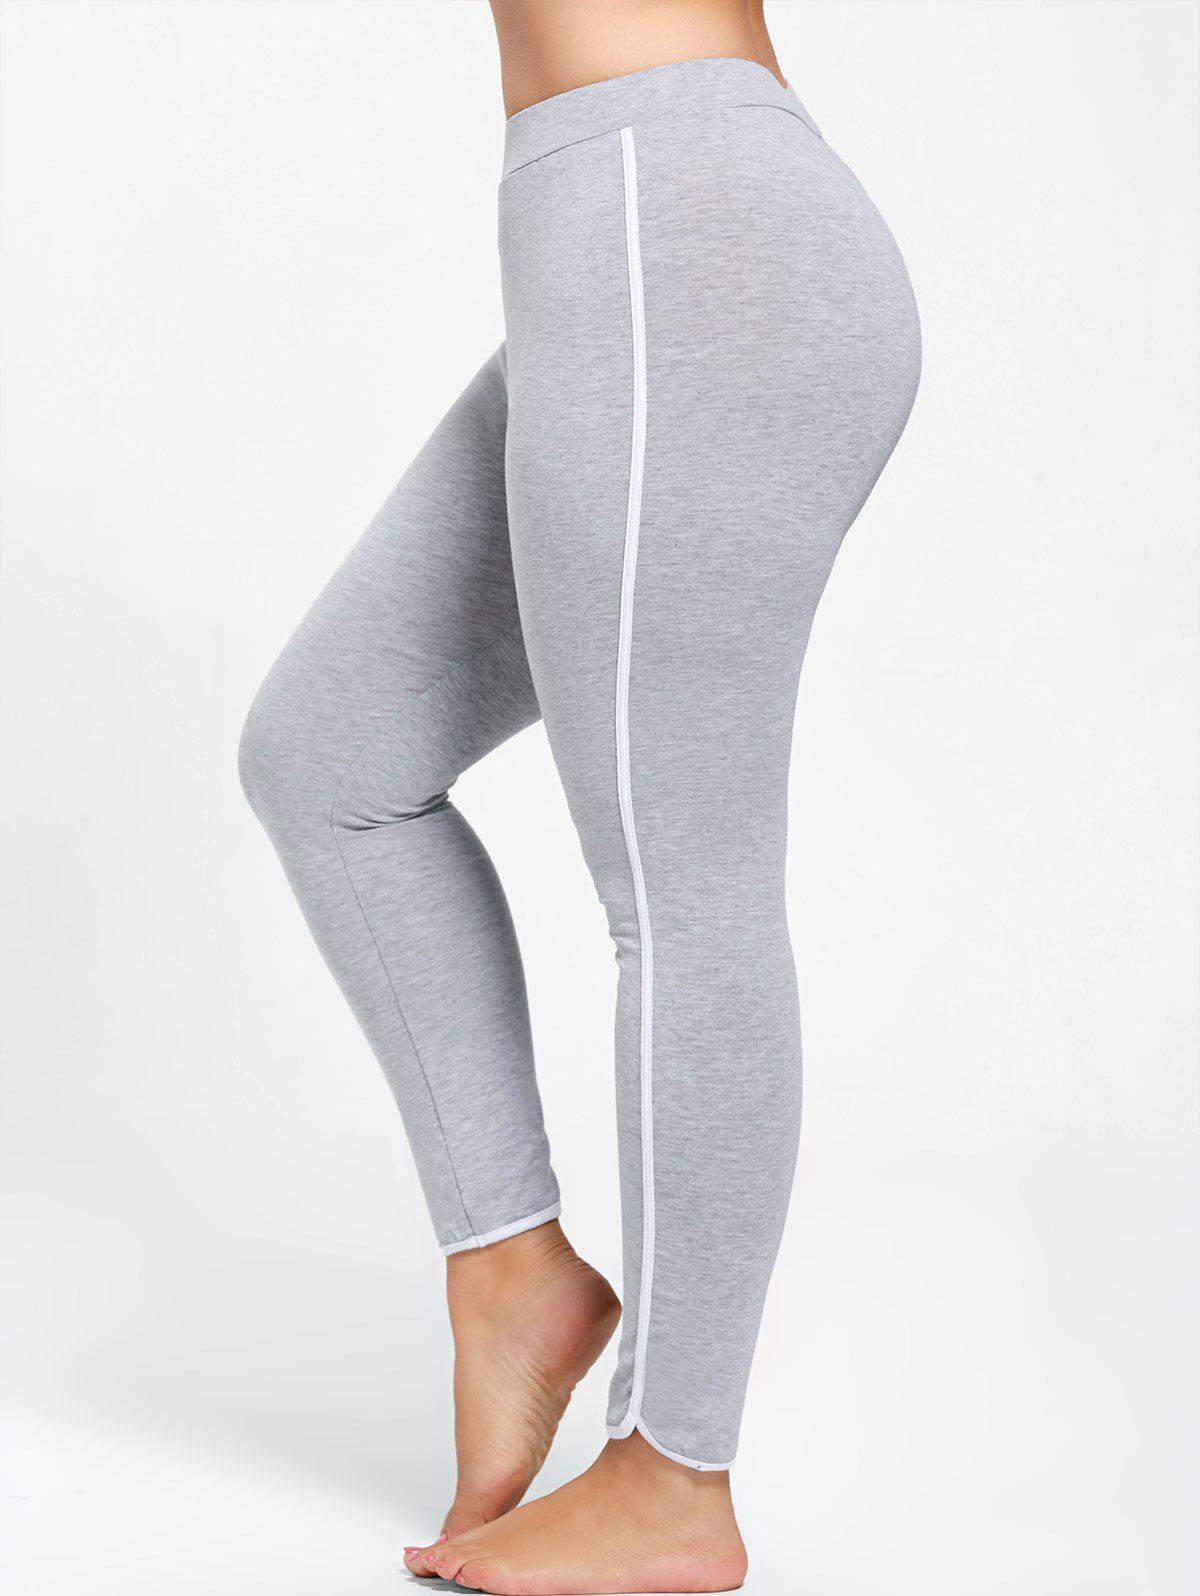 Single Stripe Plus Size Skinny LeggingsWOMEN<br><br>Size: 5XL; Color: GRAY; Style: Active; Length: Normal; Material: Cotton,Spandex; Fit Type: Regular; Waist Type: Mid; Closure Type: Elastic Waist; Pattern Type: Others; Pant Style: Pencil Pants; Weight: 0.2700kg; Package Contents: 1 x Leggings;